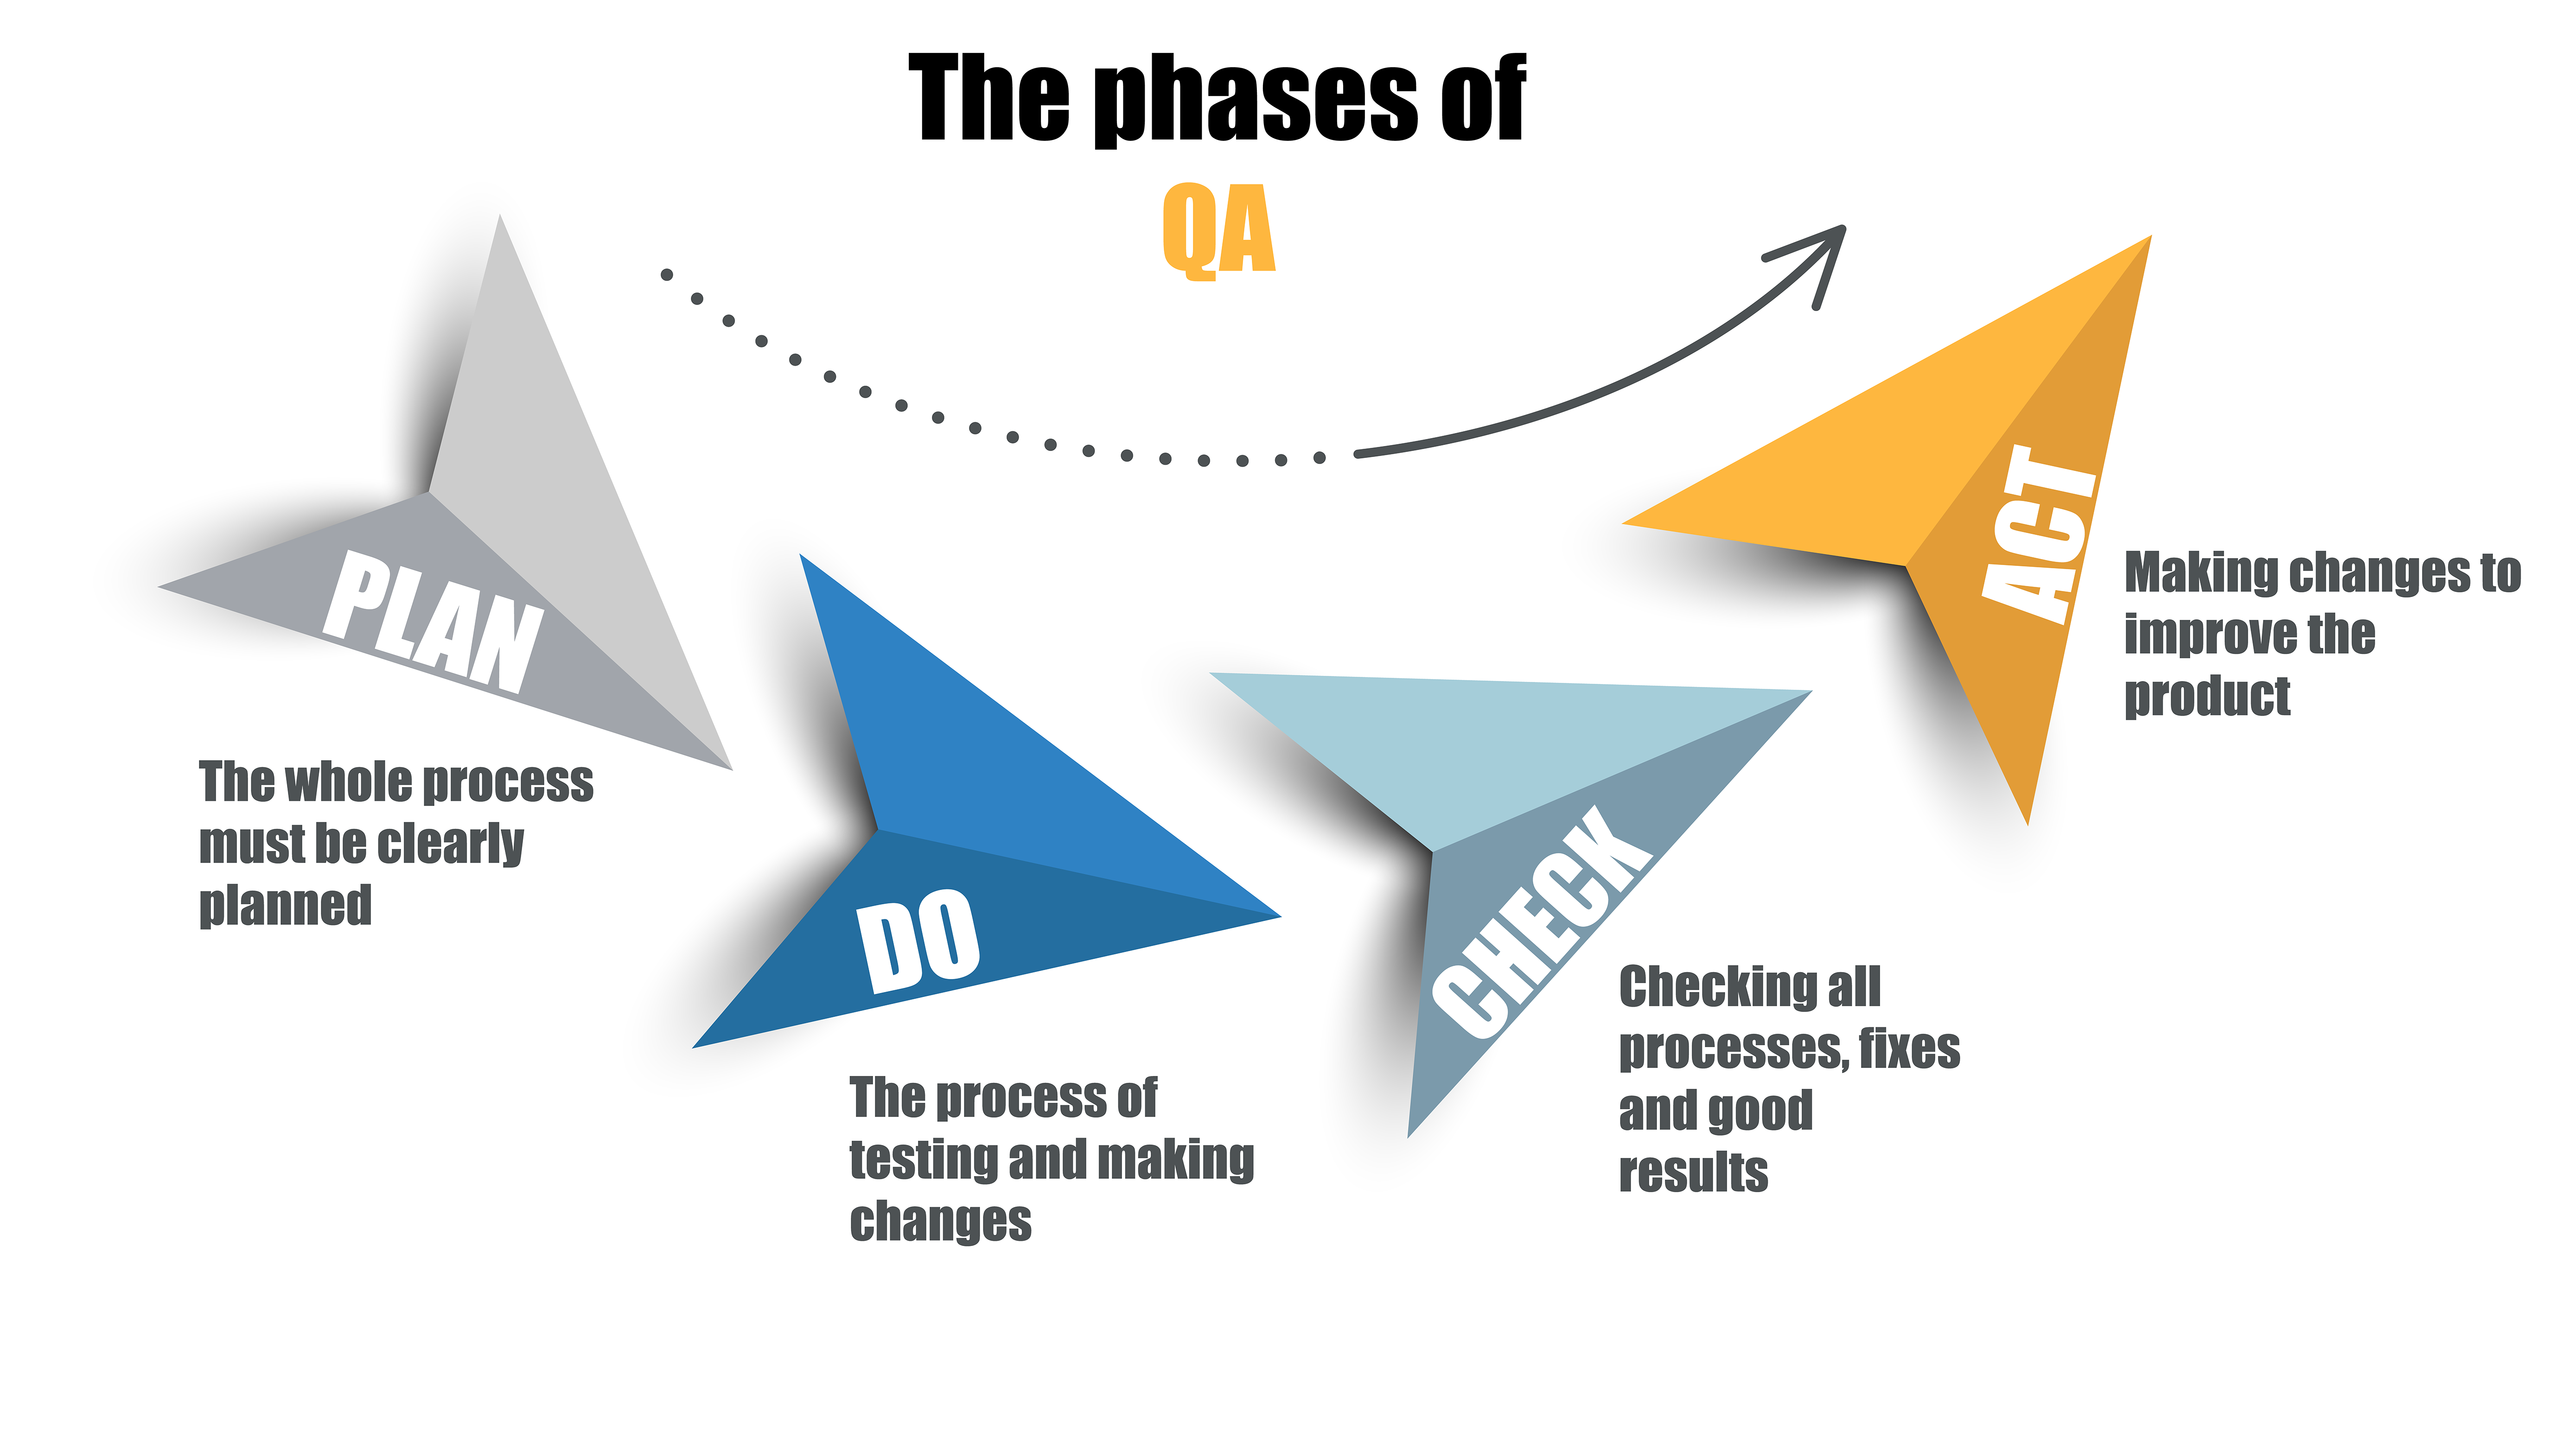 The phases of QA